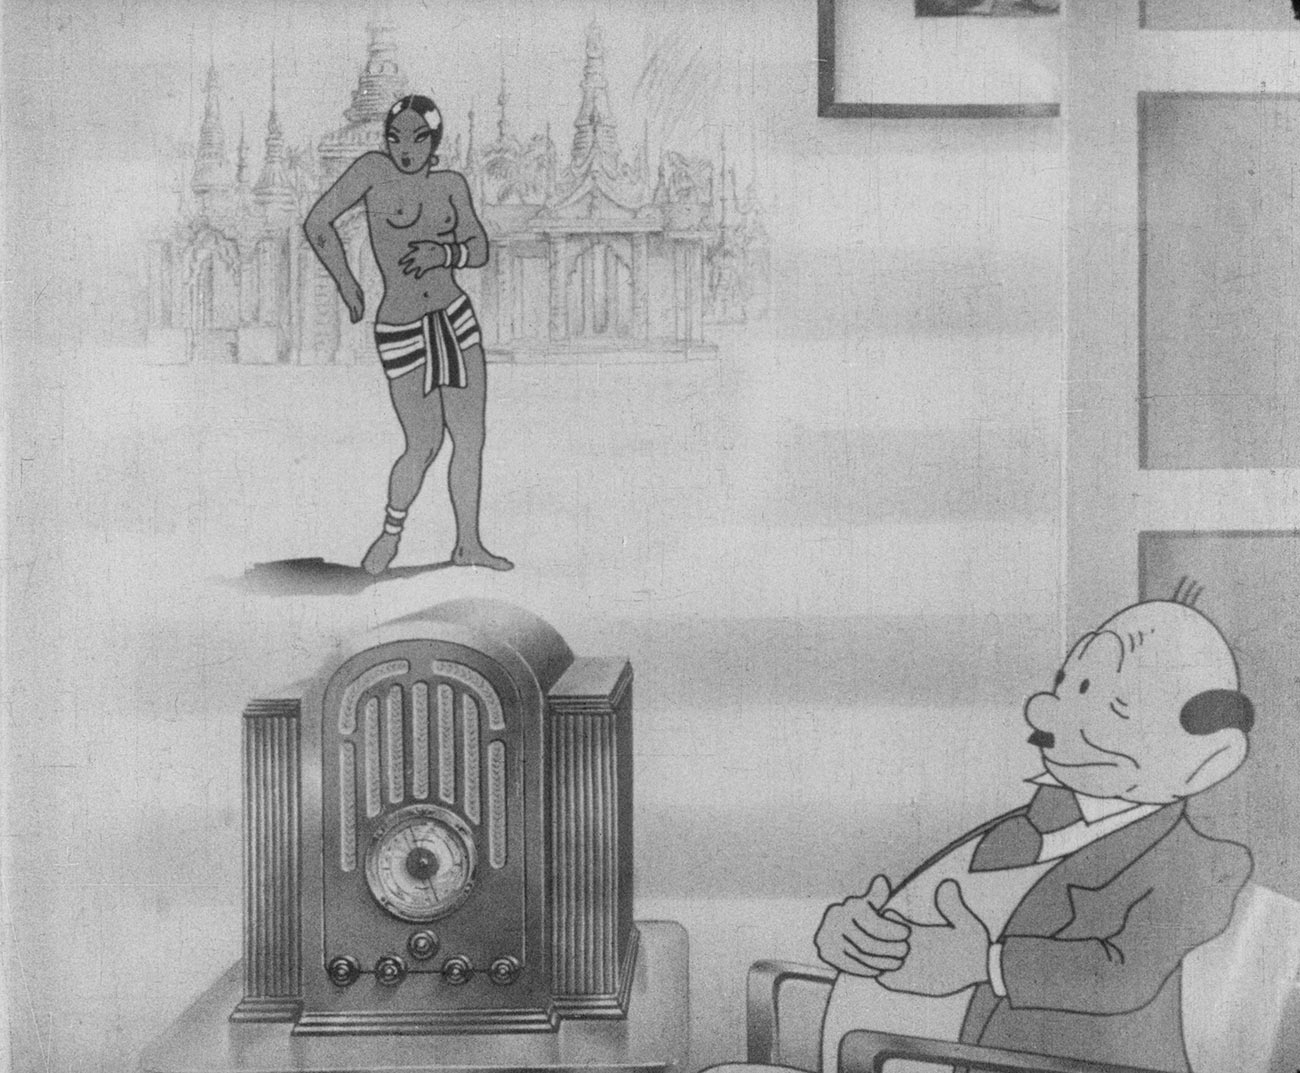 Radio RCA. directed by Enrique Ferrán, ca. 1935.